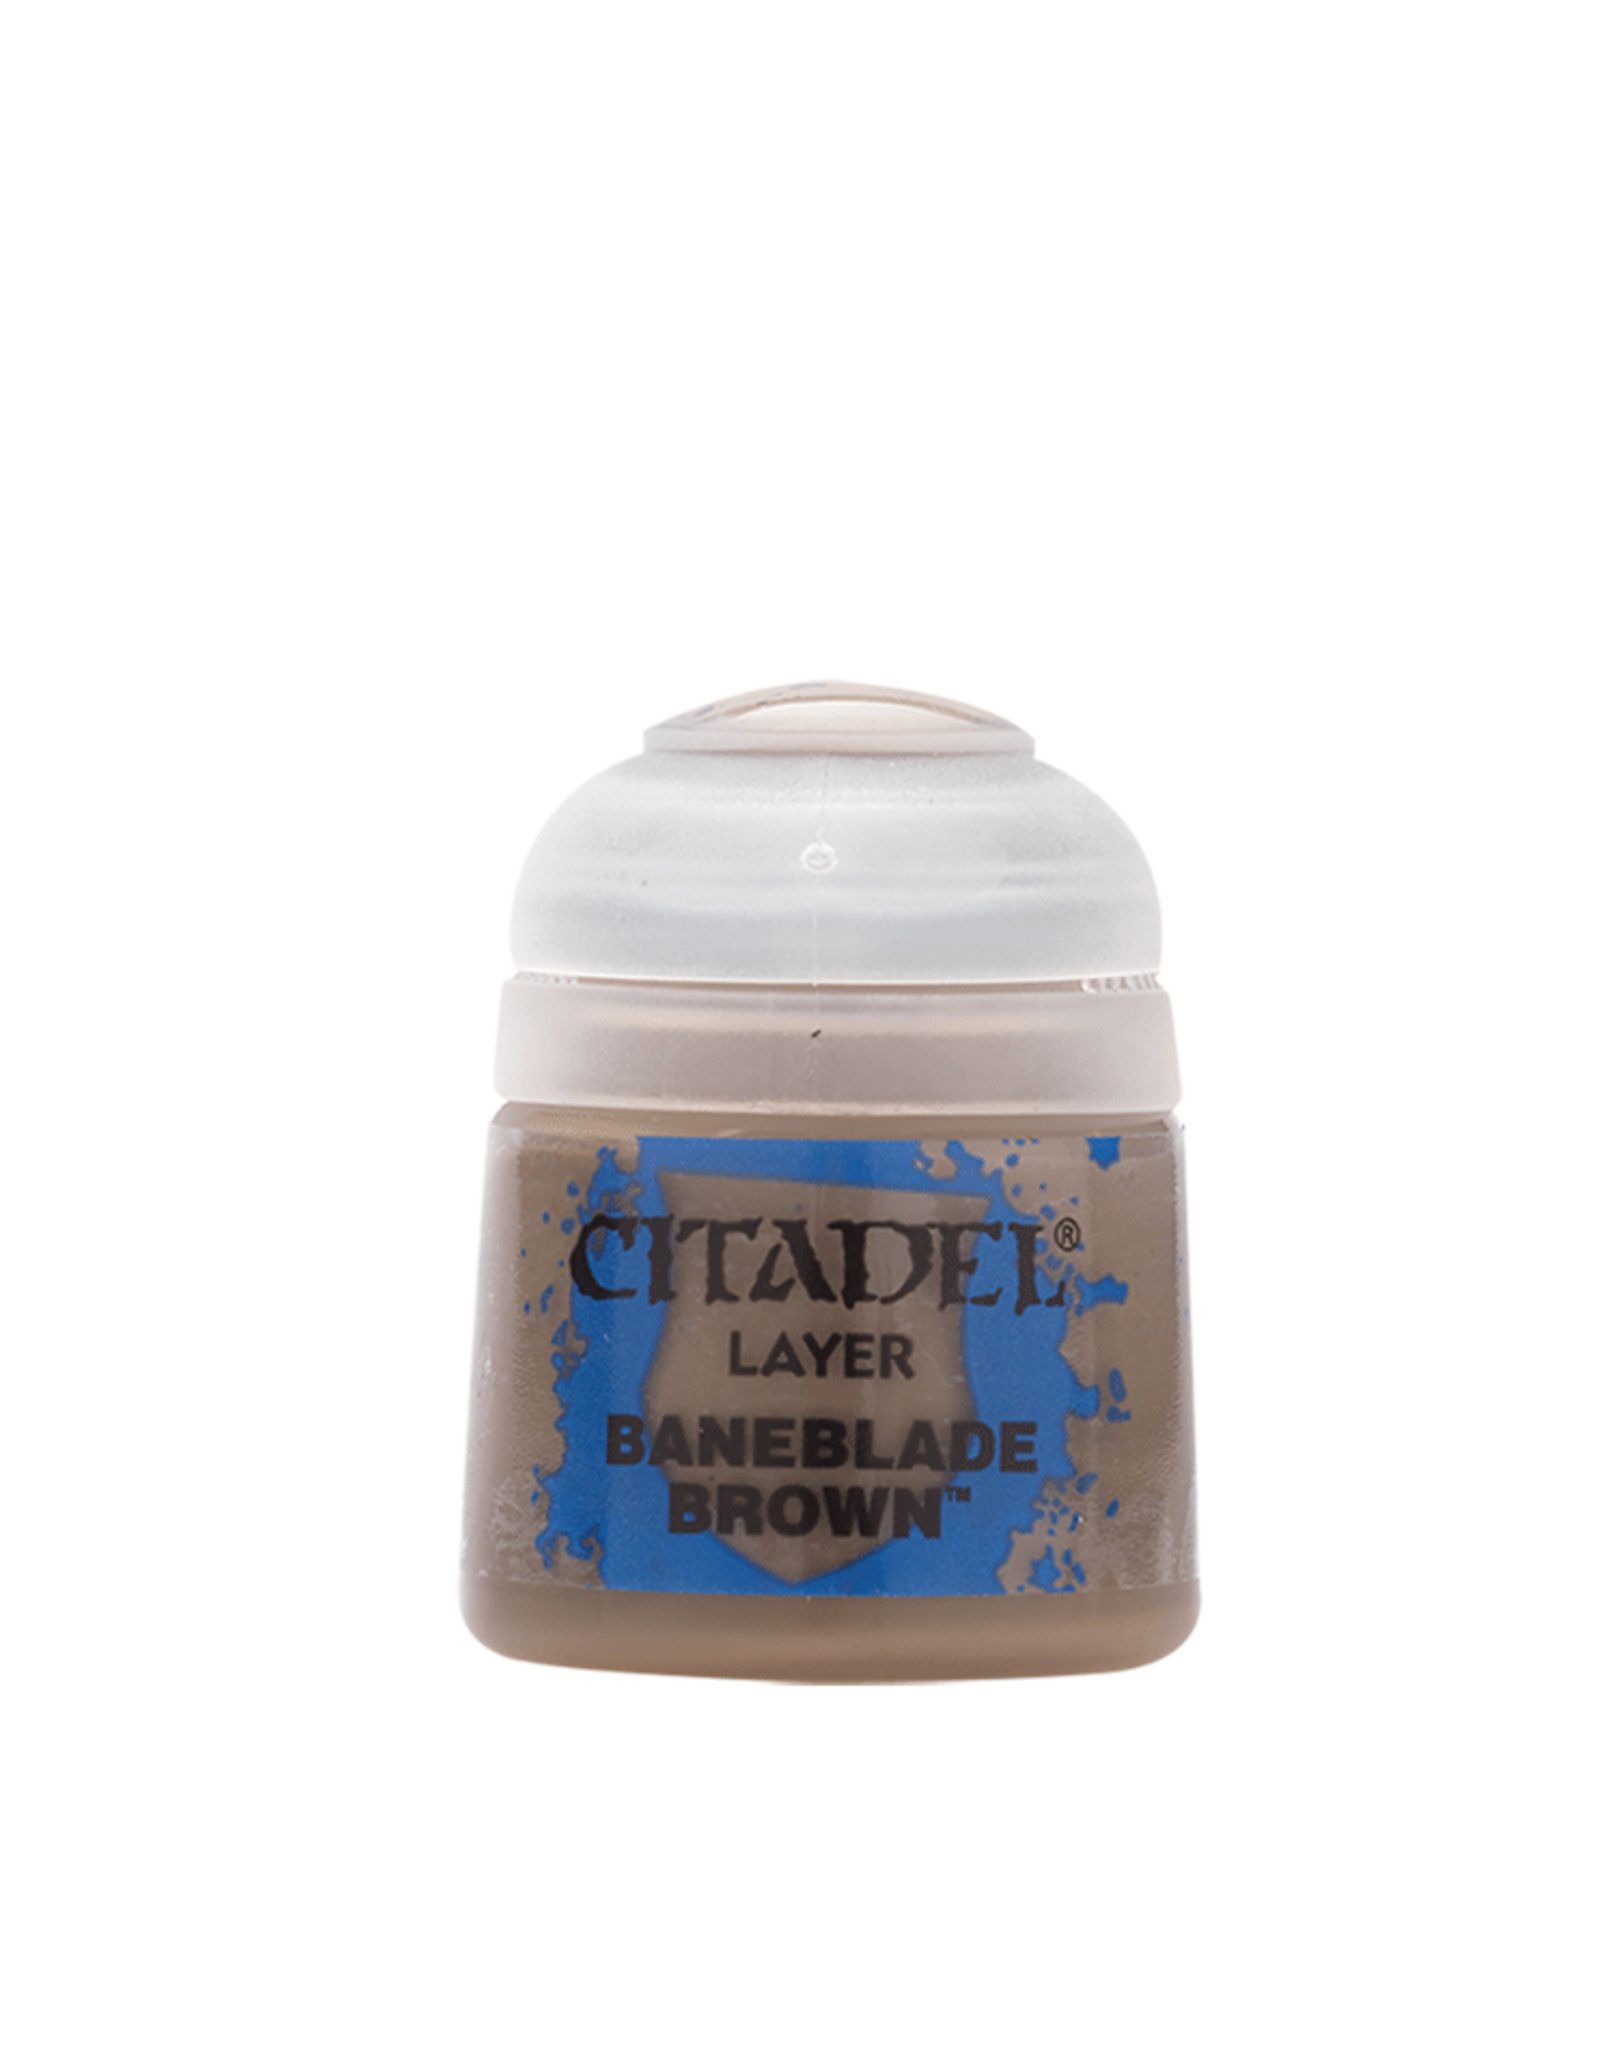 Games Workshop Citadel Layer: Baneblade Brown